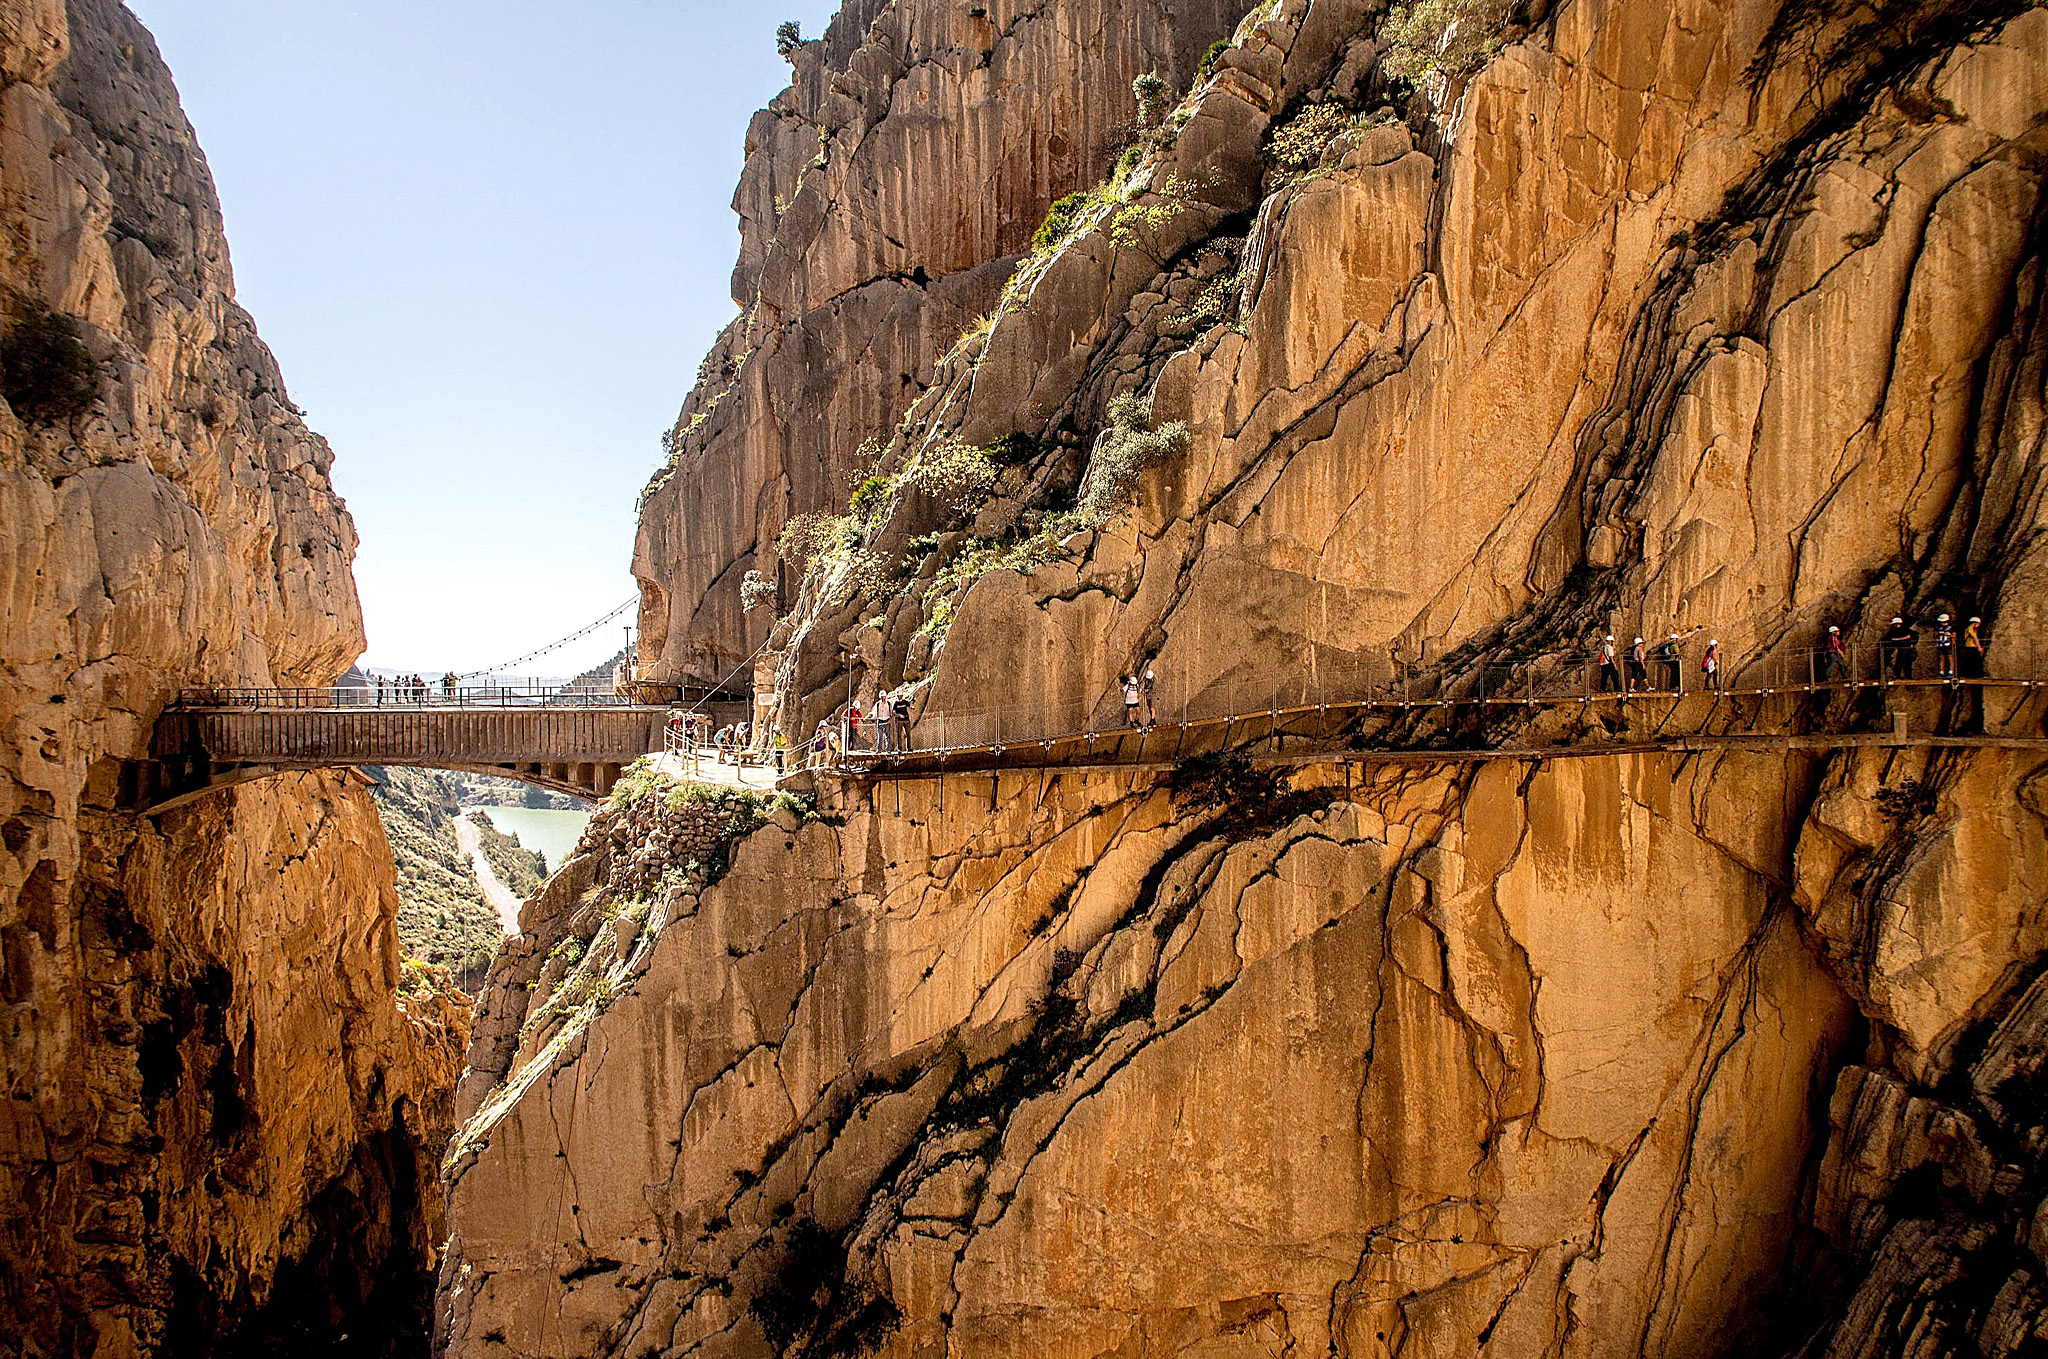 ***BESTPIX*** World's Most Dangerous Footpath Set To Reopen In Spain...MALAGA, SPAIN - APRIL 01:  Tourists walk along the 'El Caminito del Rey' (King's Little Path) footpath on April 1, 2015 in Malaga, Spain. 'El Caminito del Rey', which was built in 1905 and winds through the Gaitanes Gorge, reopened last weekend after a safer footpath was installed above the original. The path, known as the most dangerous footpath in the world, was closed after two fatal accidents in 1999 and 2000. The restoration started in 2011 and reportedly cost 5.5 million euros.  (Photo by David Ramos/Getty Images) ***BESTPIX***